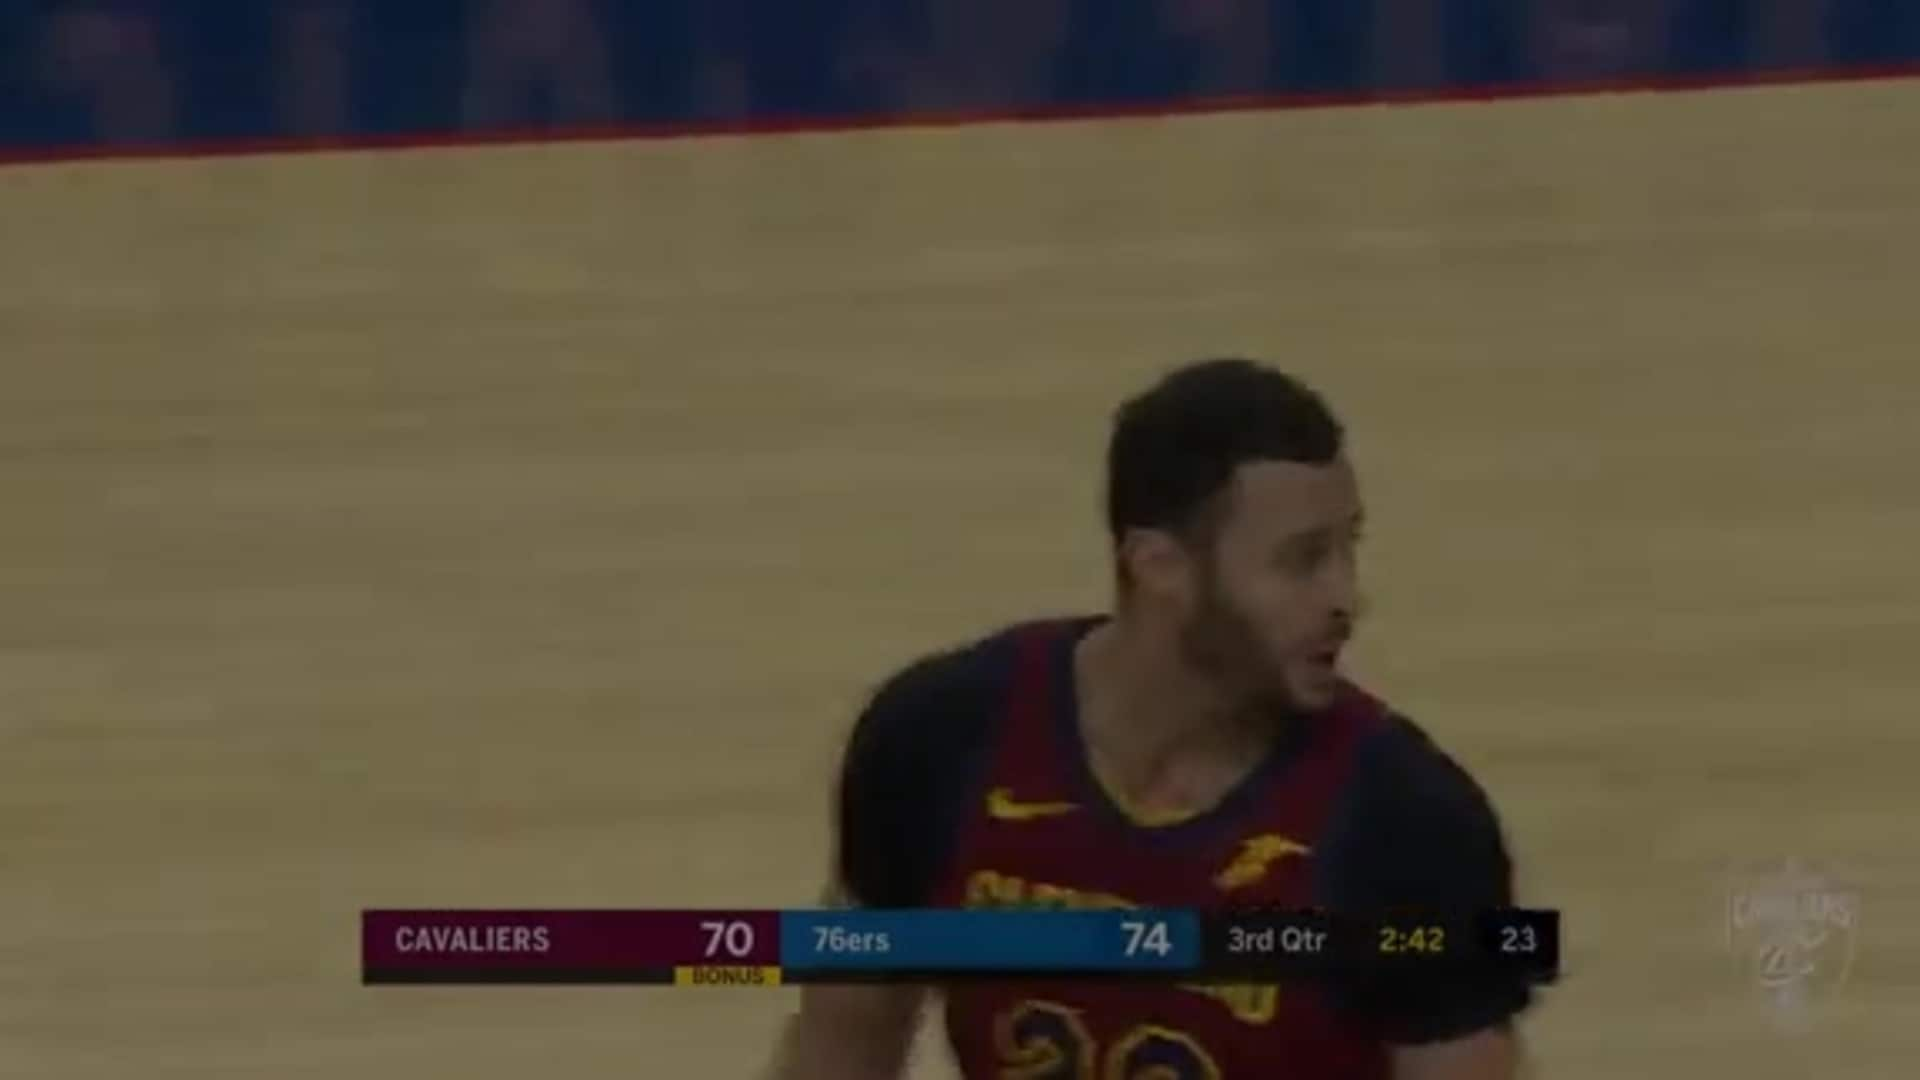 Larry Nance Jr. with the Putback Slam